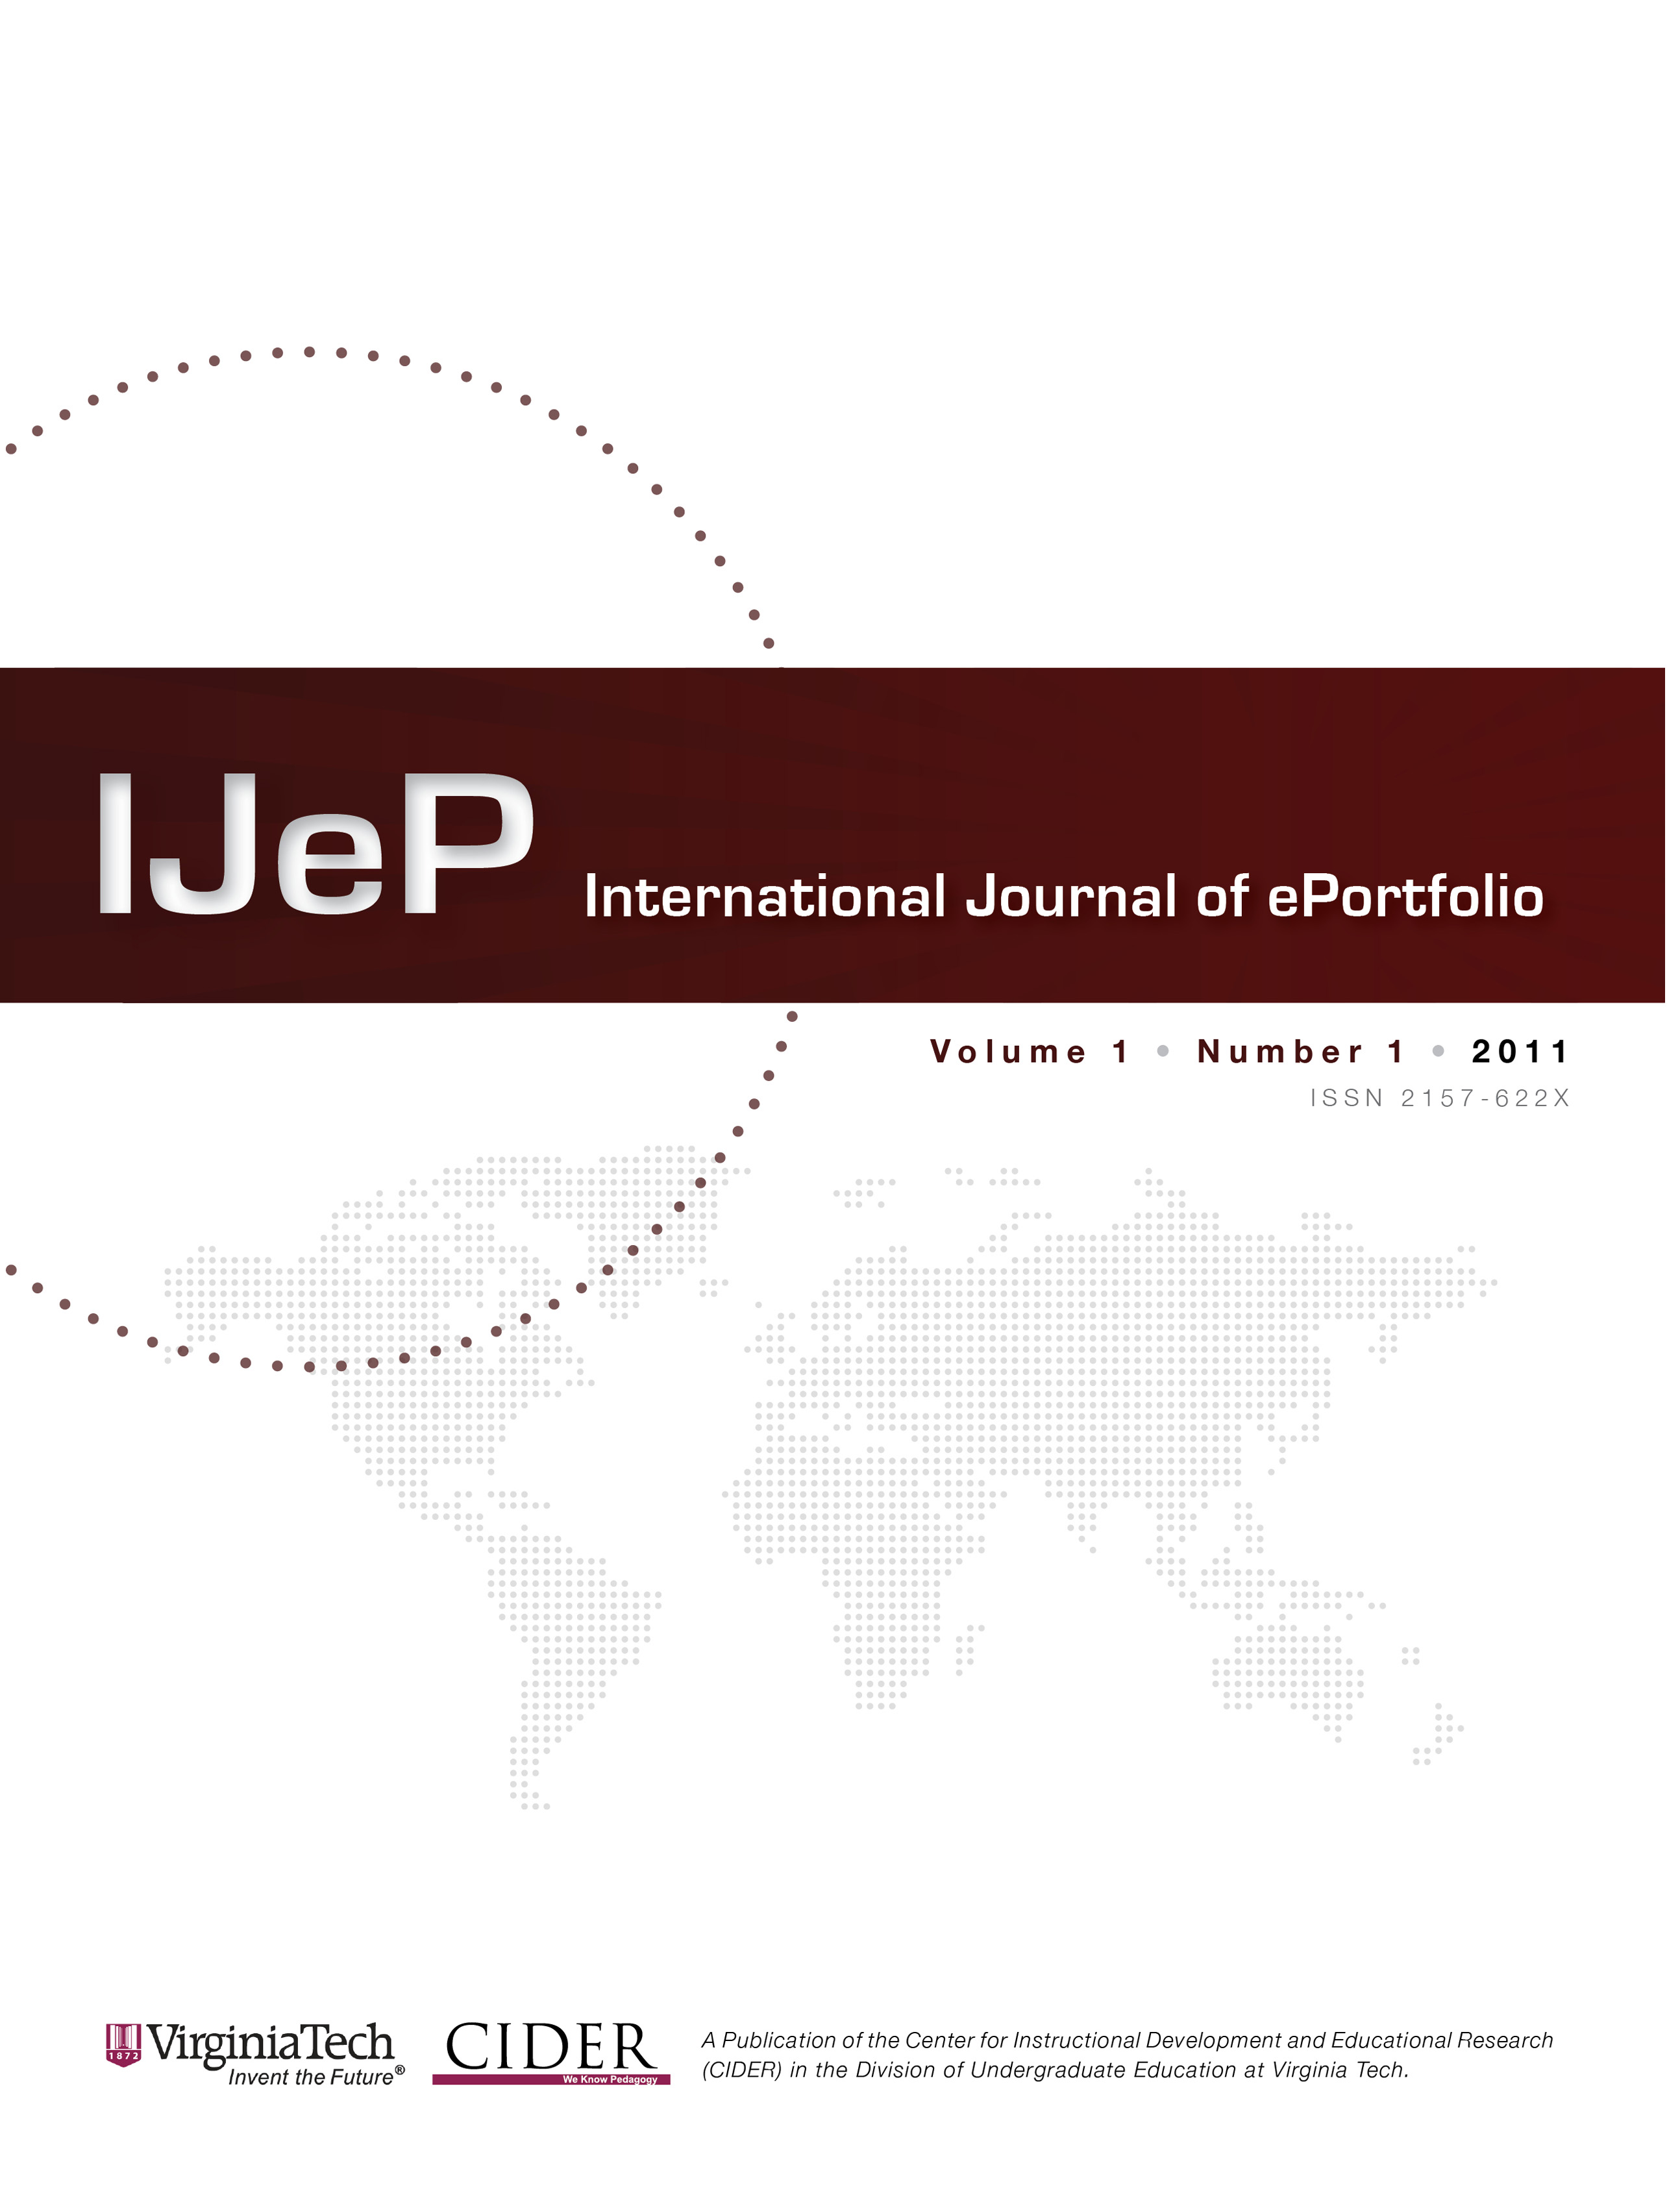 Cover of Inaugural Issue of International Journal of ePortfolio